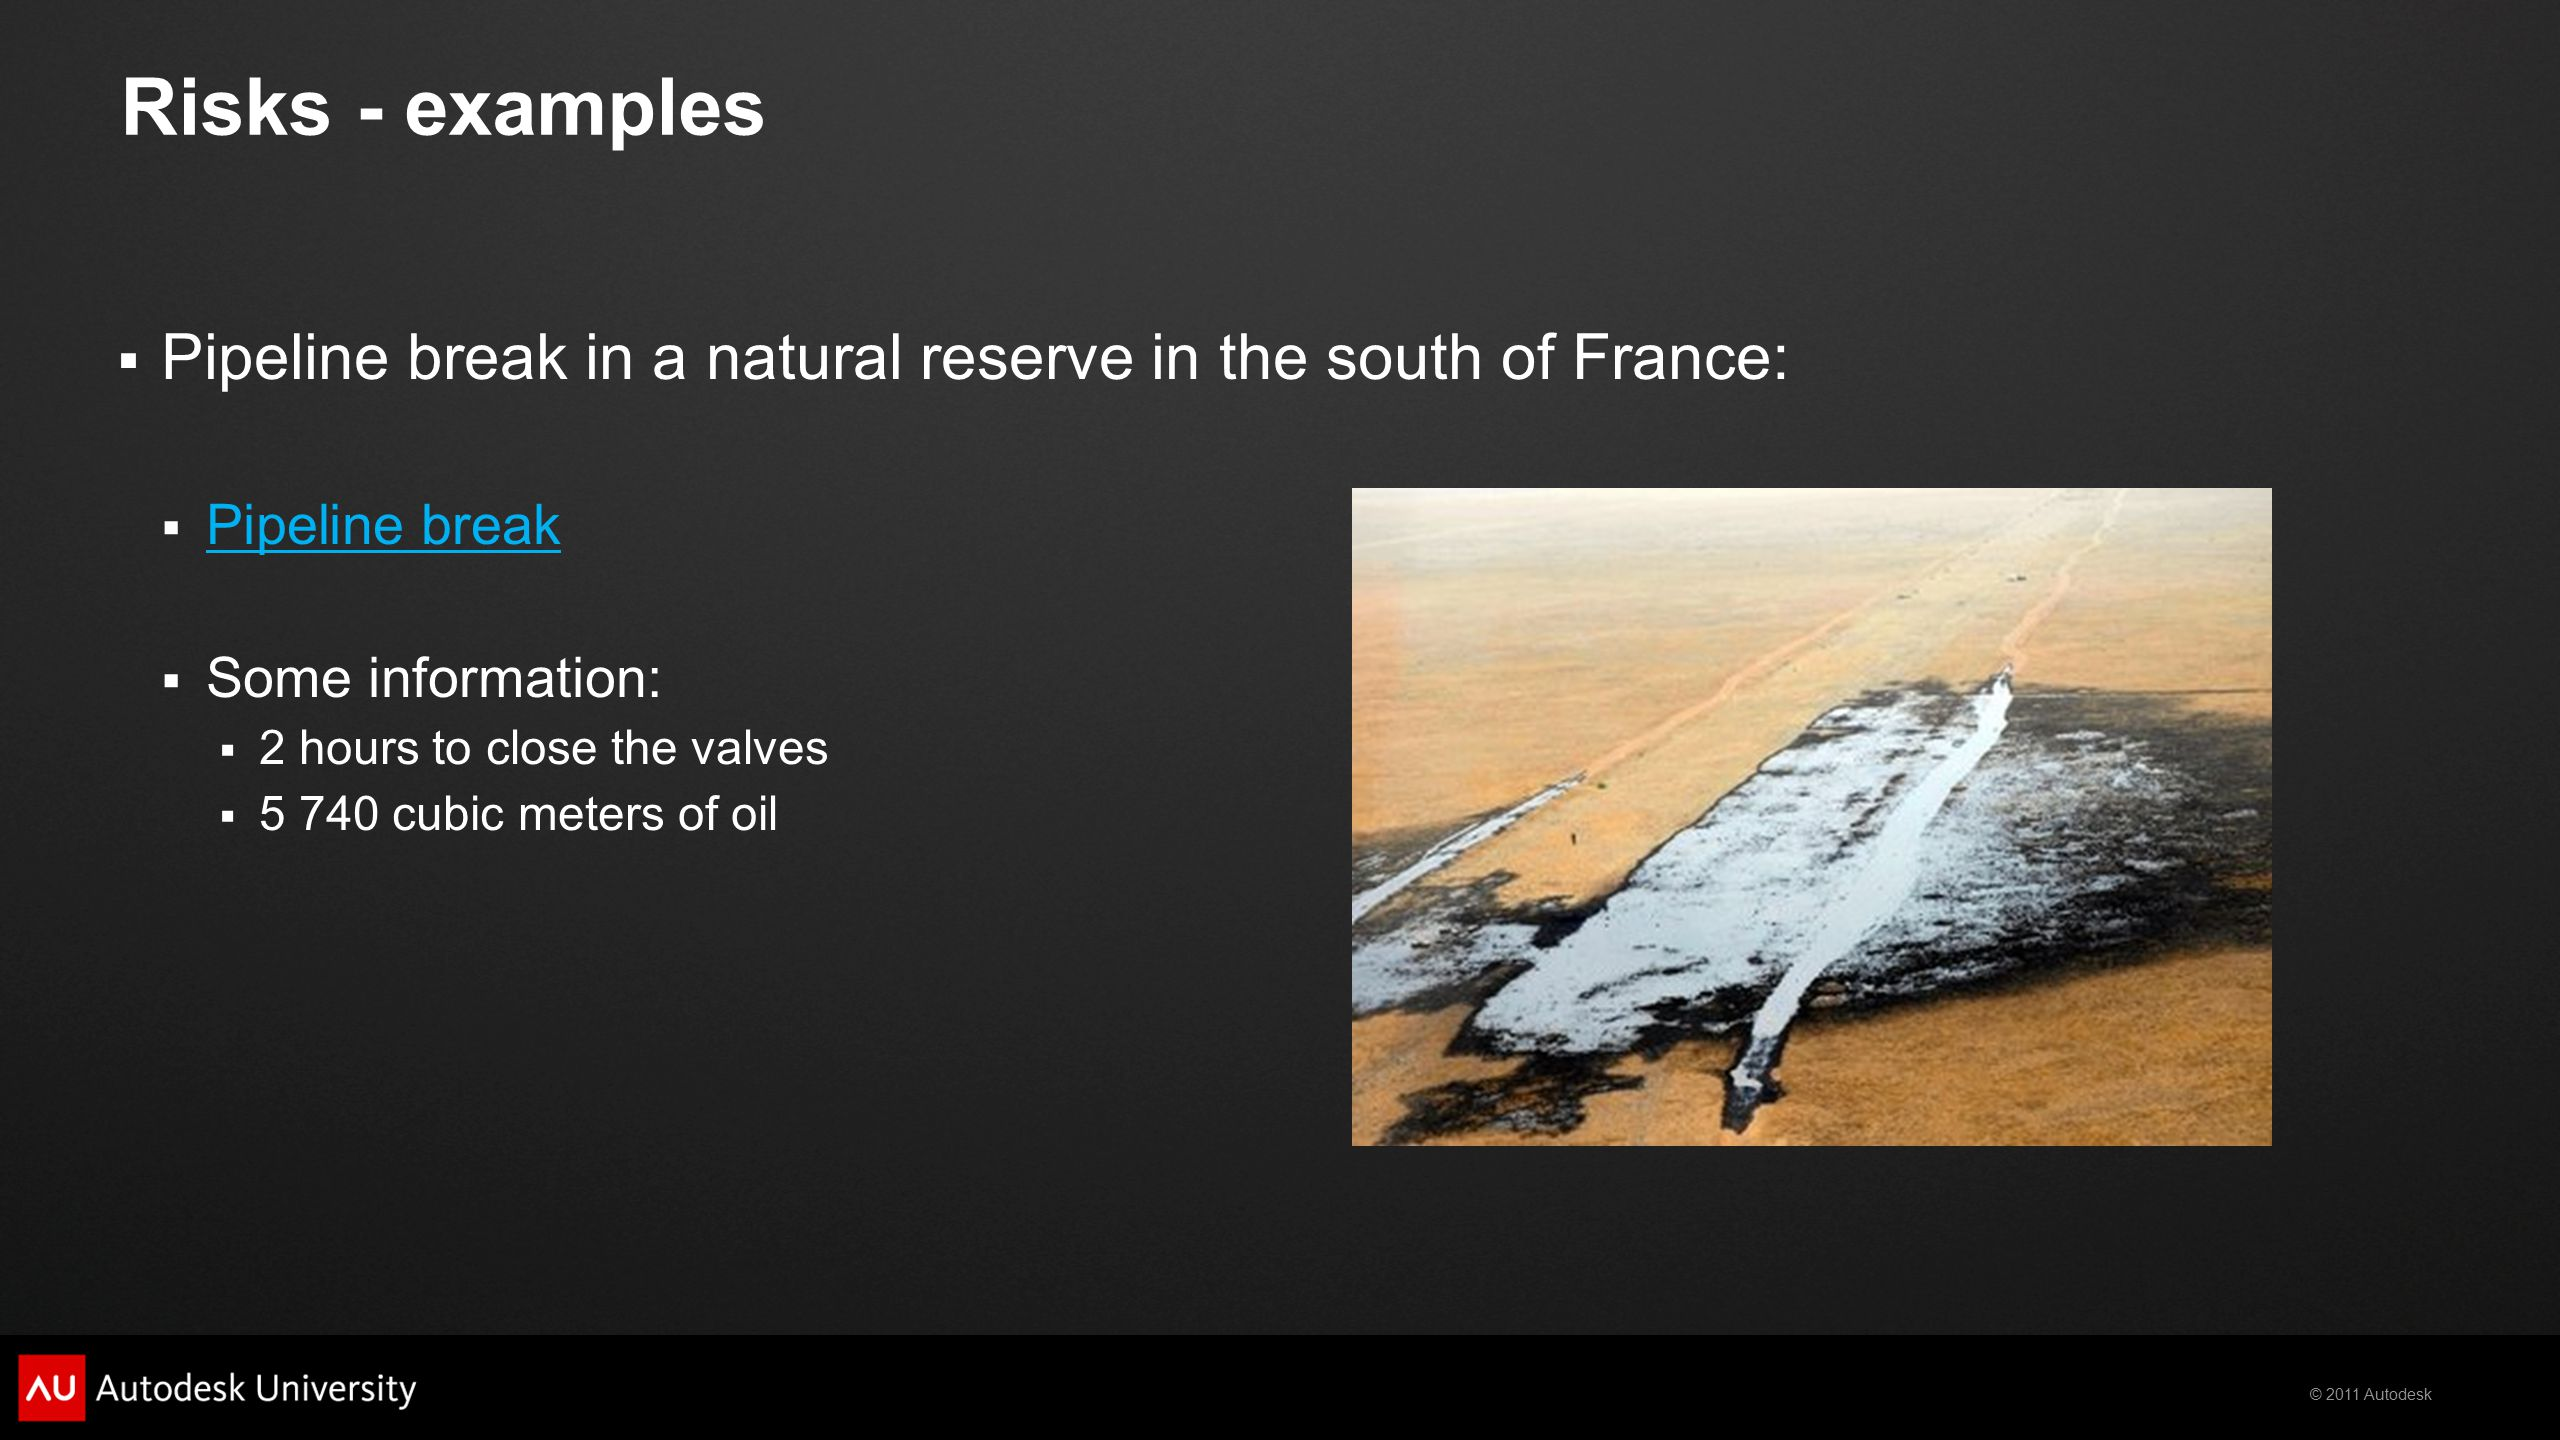 © 2011 Autodesk Risks - examples  Pipeline break in a natural reserve in the south of France:  Pipeline break Pipeline break  Some information:  2 hours to close the valves  5 740 cubic meters of oil